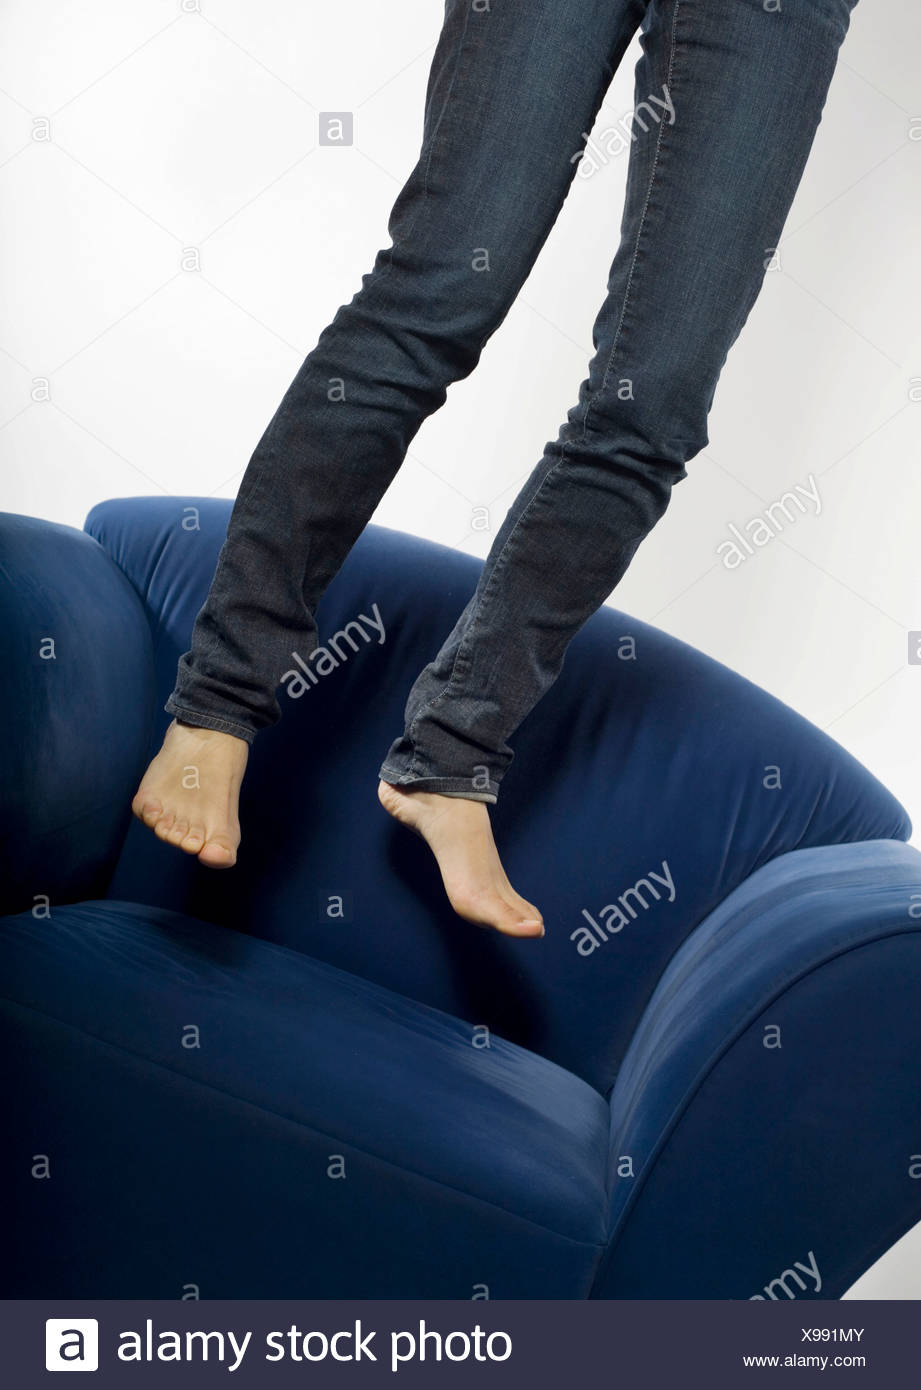 Woman in jeans jumping barefooted on a blue armchair - Stock Image